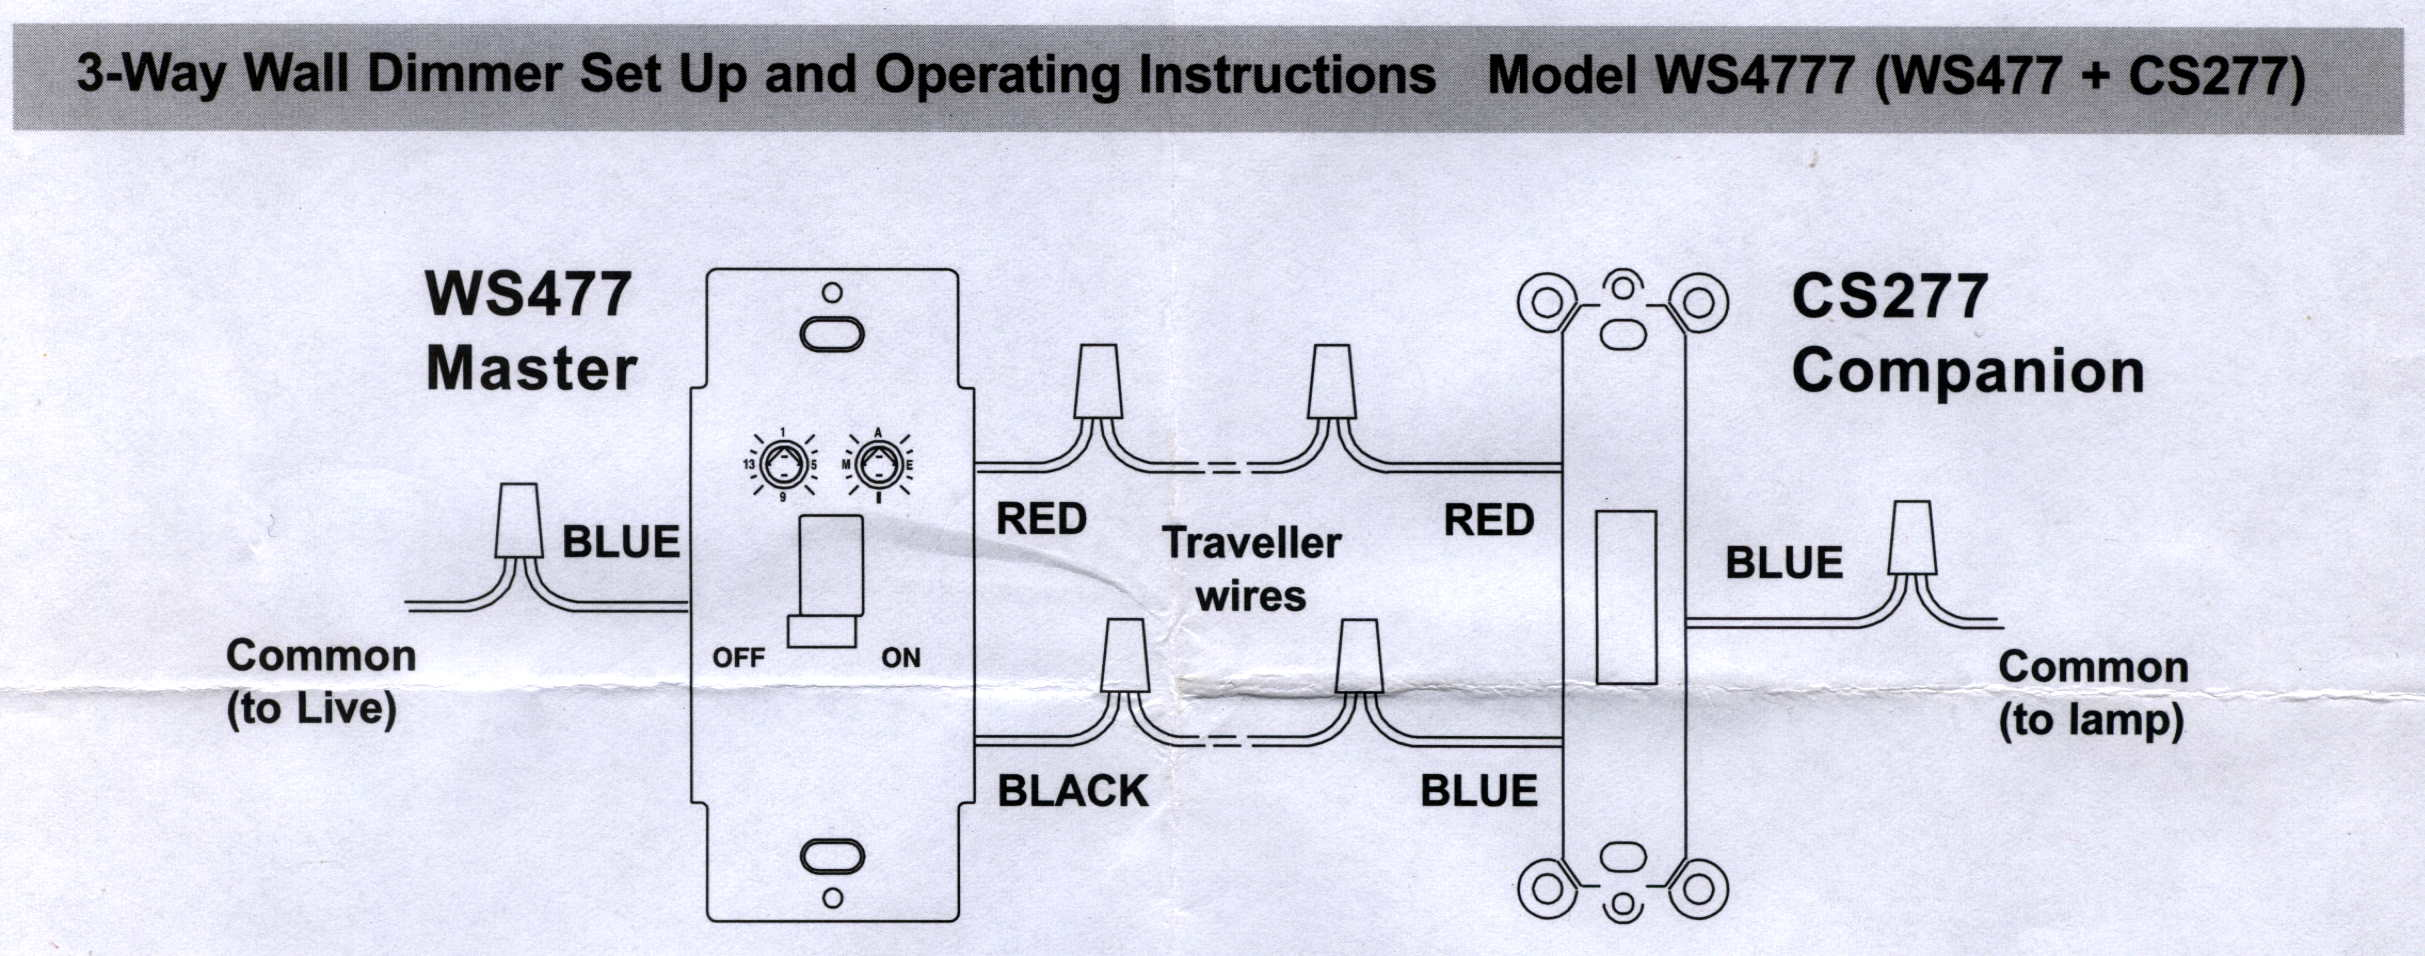 X10 switch wiring diagram free vehicle wiring diagrams using a 3 way x10 wall switch as a 2 way switch the smell of rh softsolder com 2 way switch wiring diagram single pole switch wiring diagram cheapraybanclubmaster